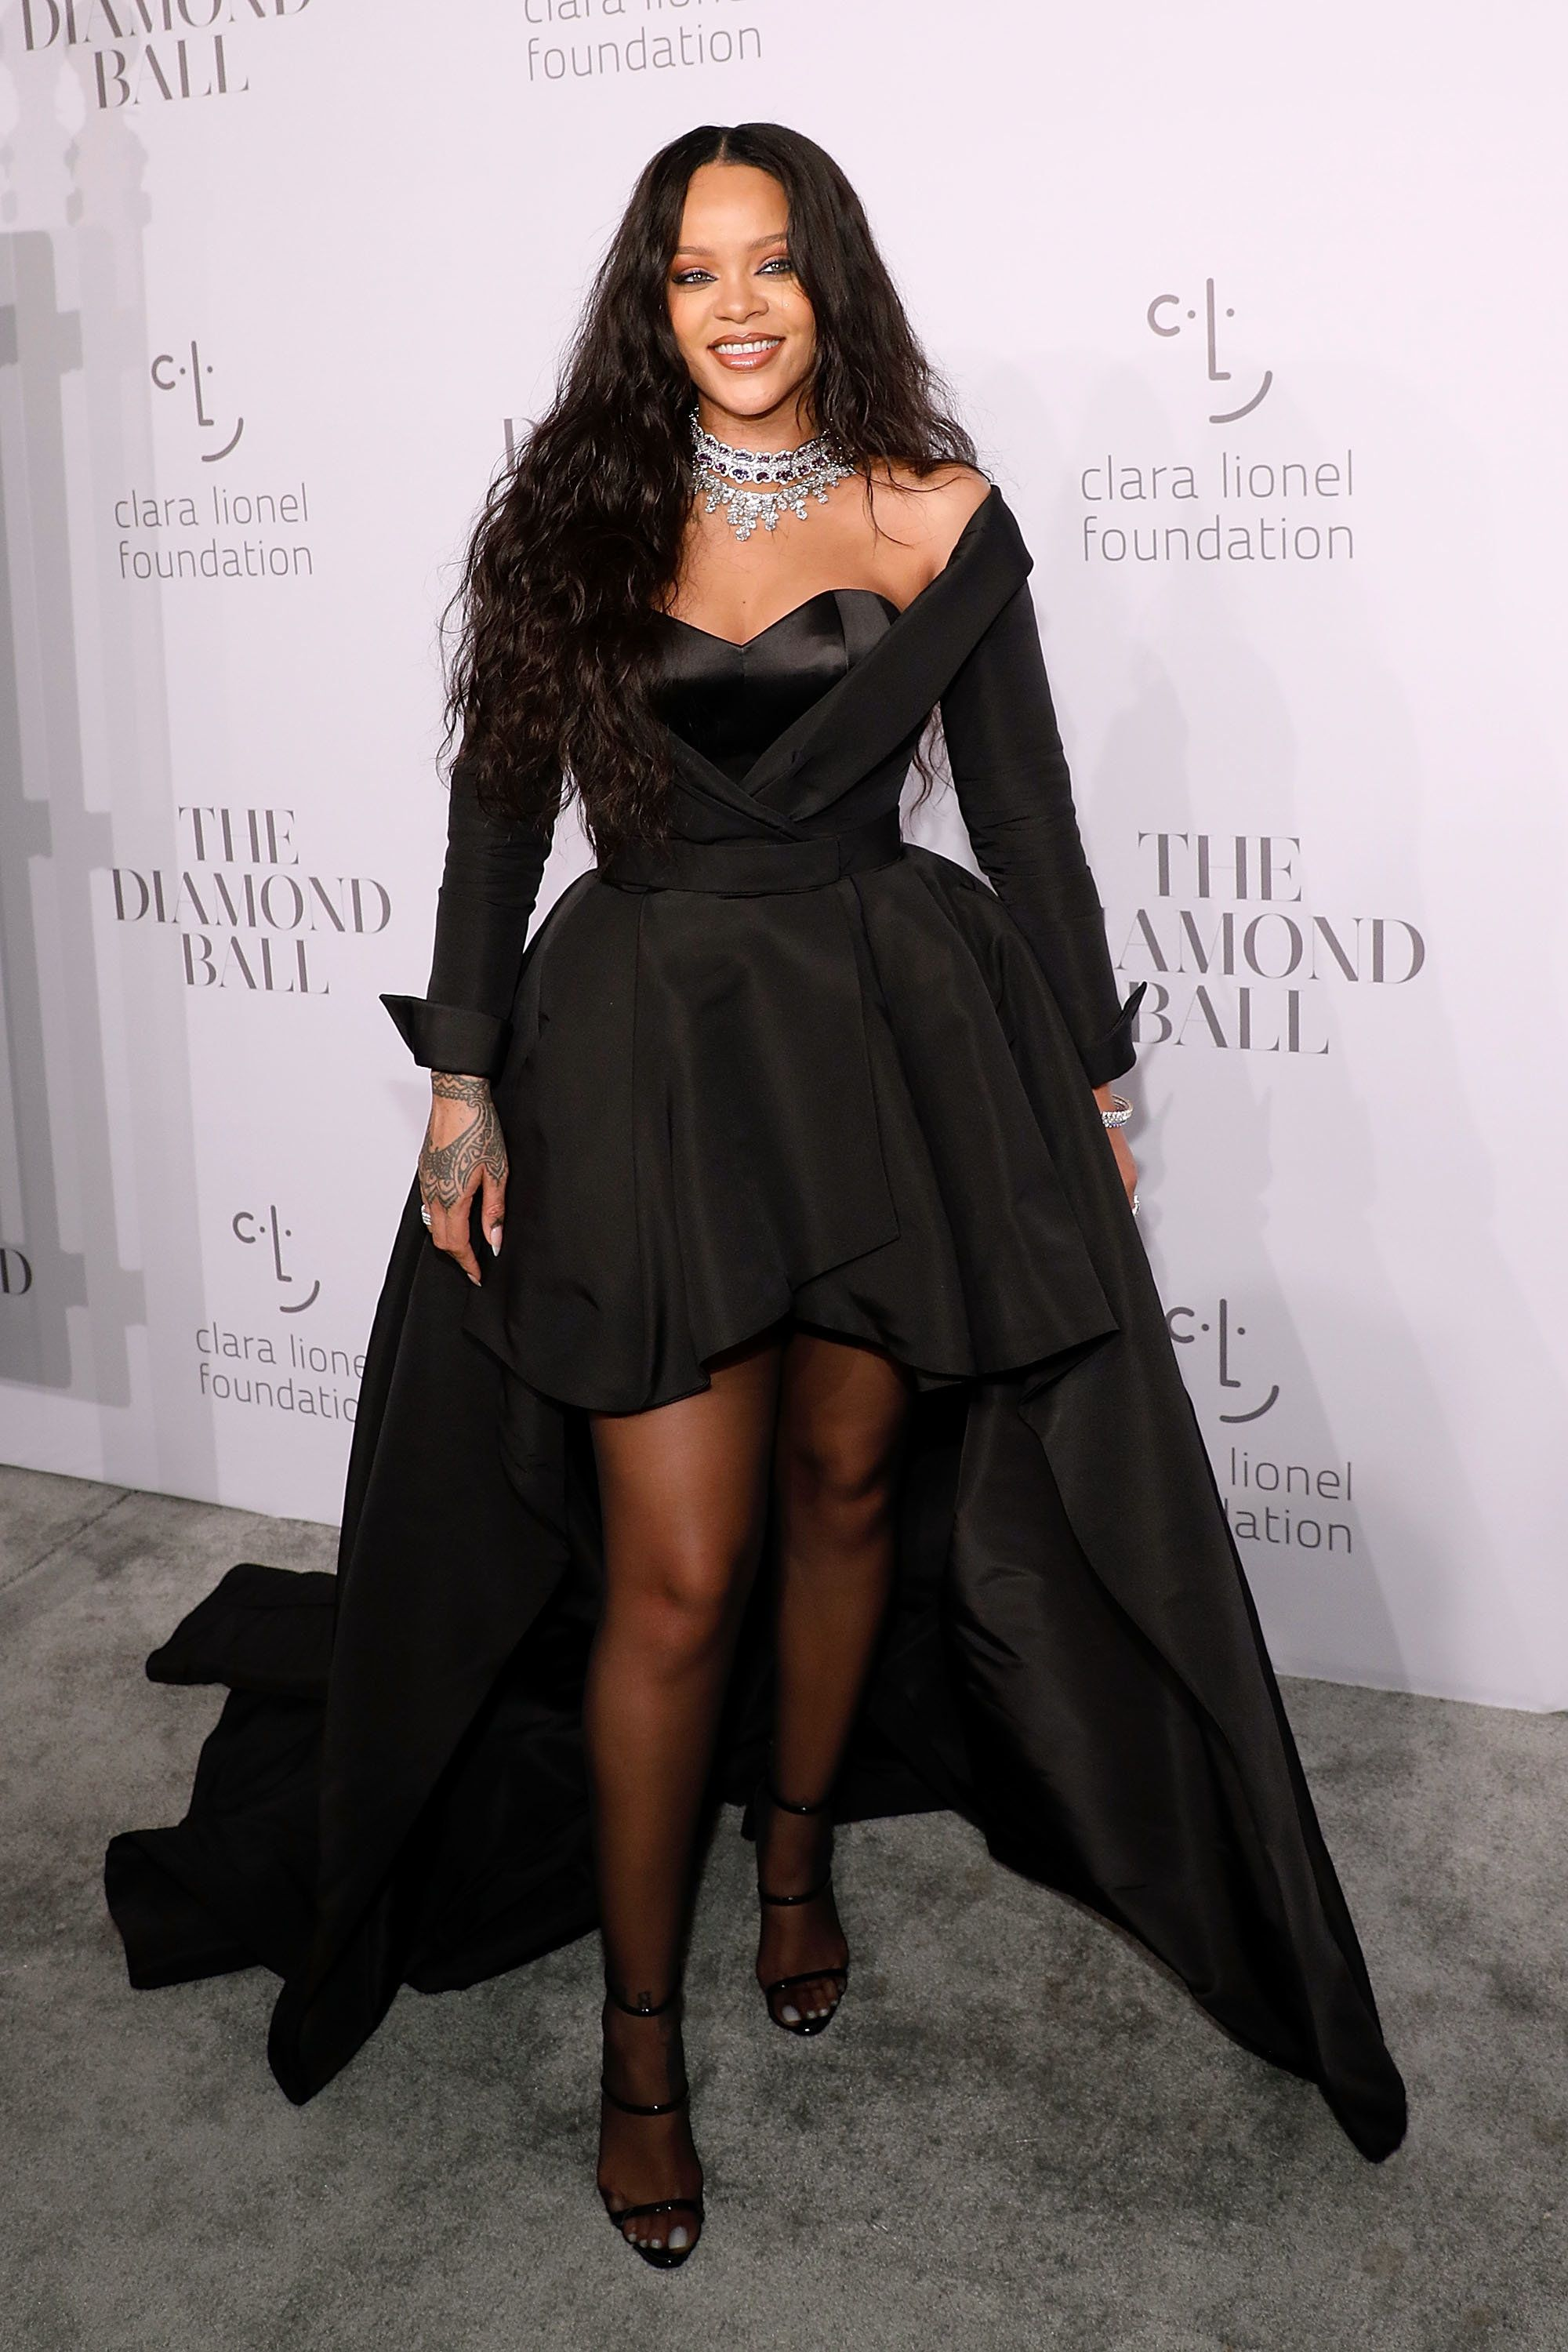 All The Most Incredible Looks From Rihanna's Diamond